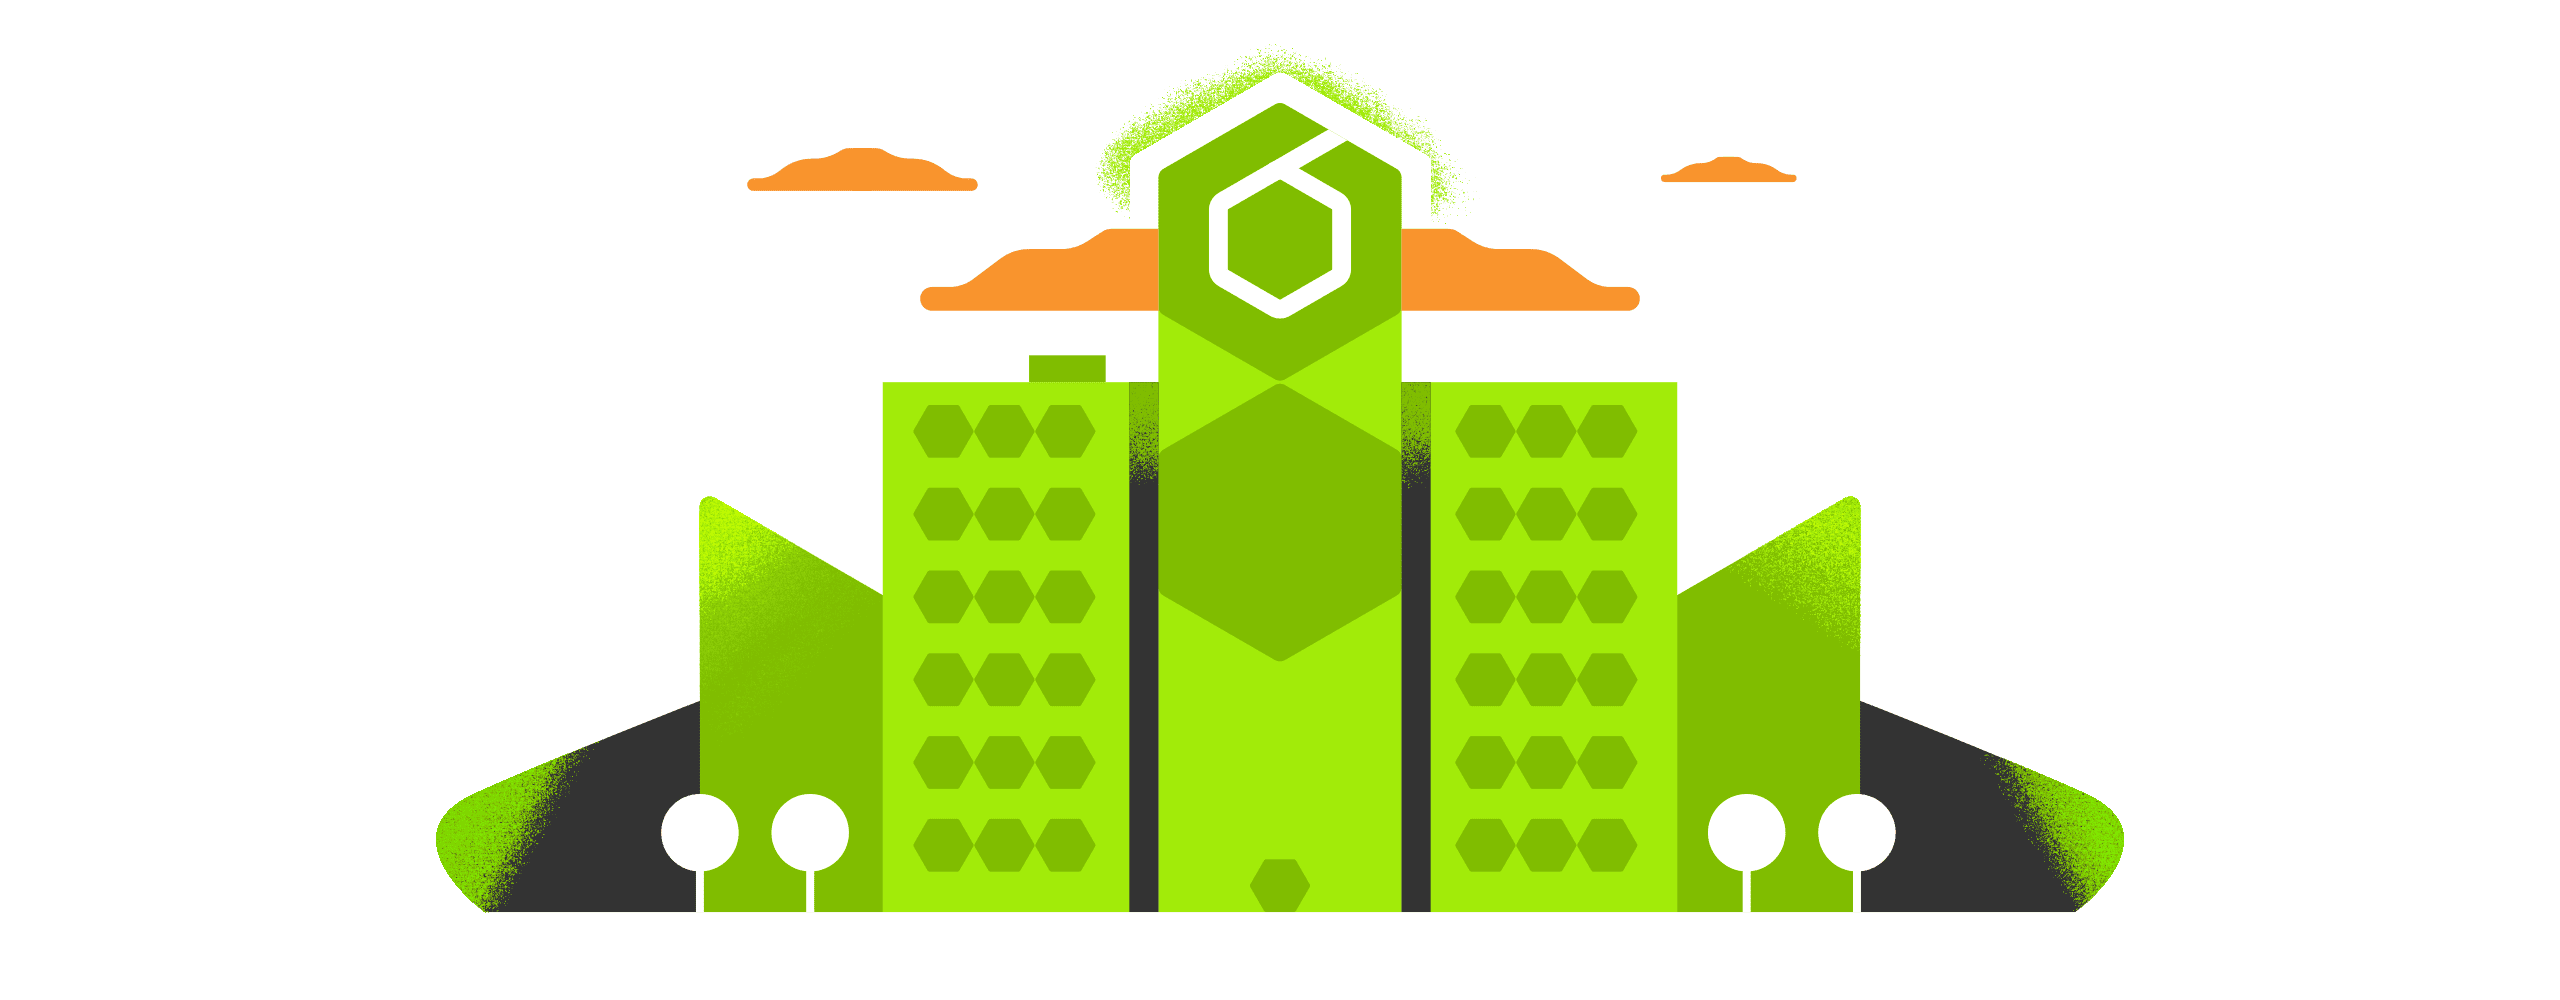 6 Main Reasons Why Node.js Has Become a Standard Technology for Enterprise-Level Organizations